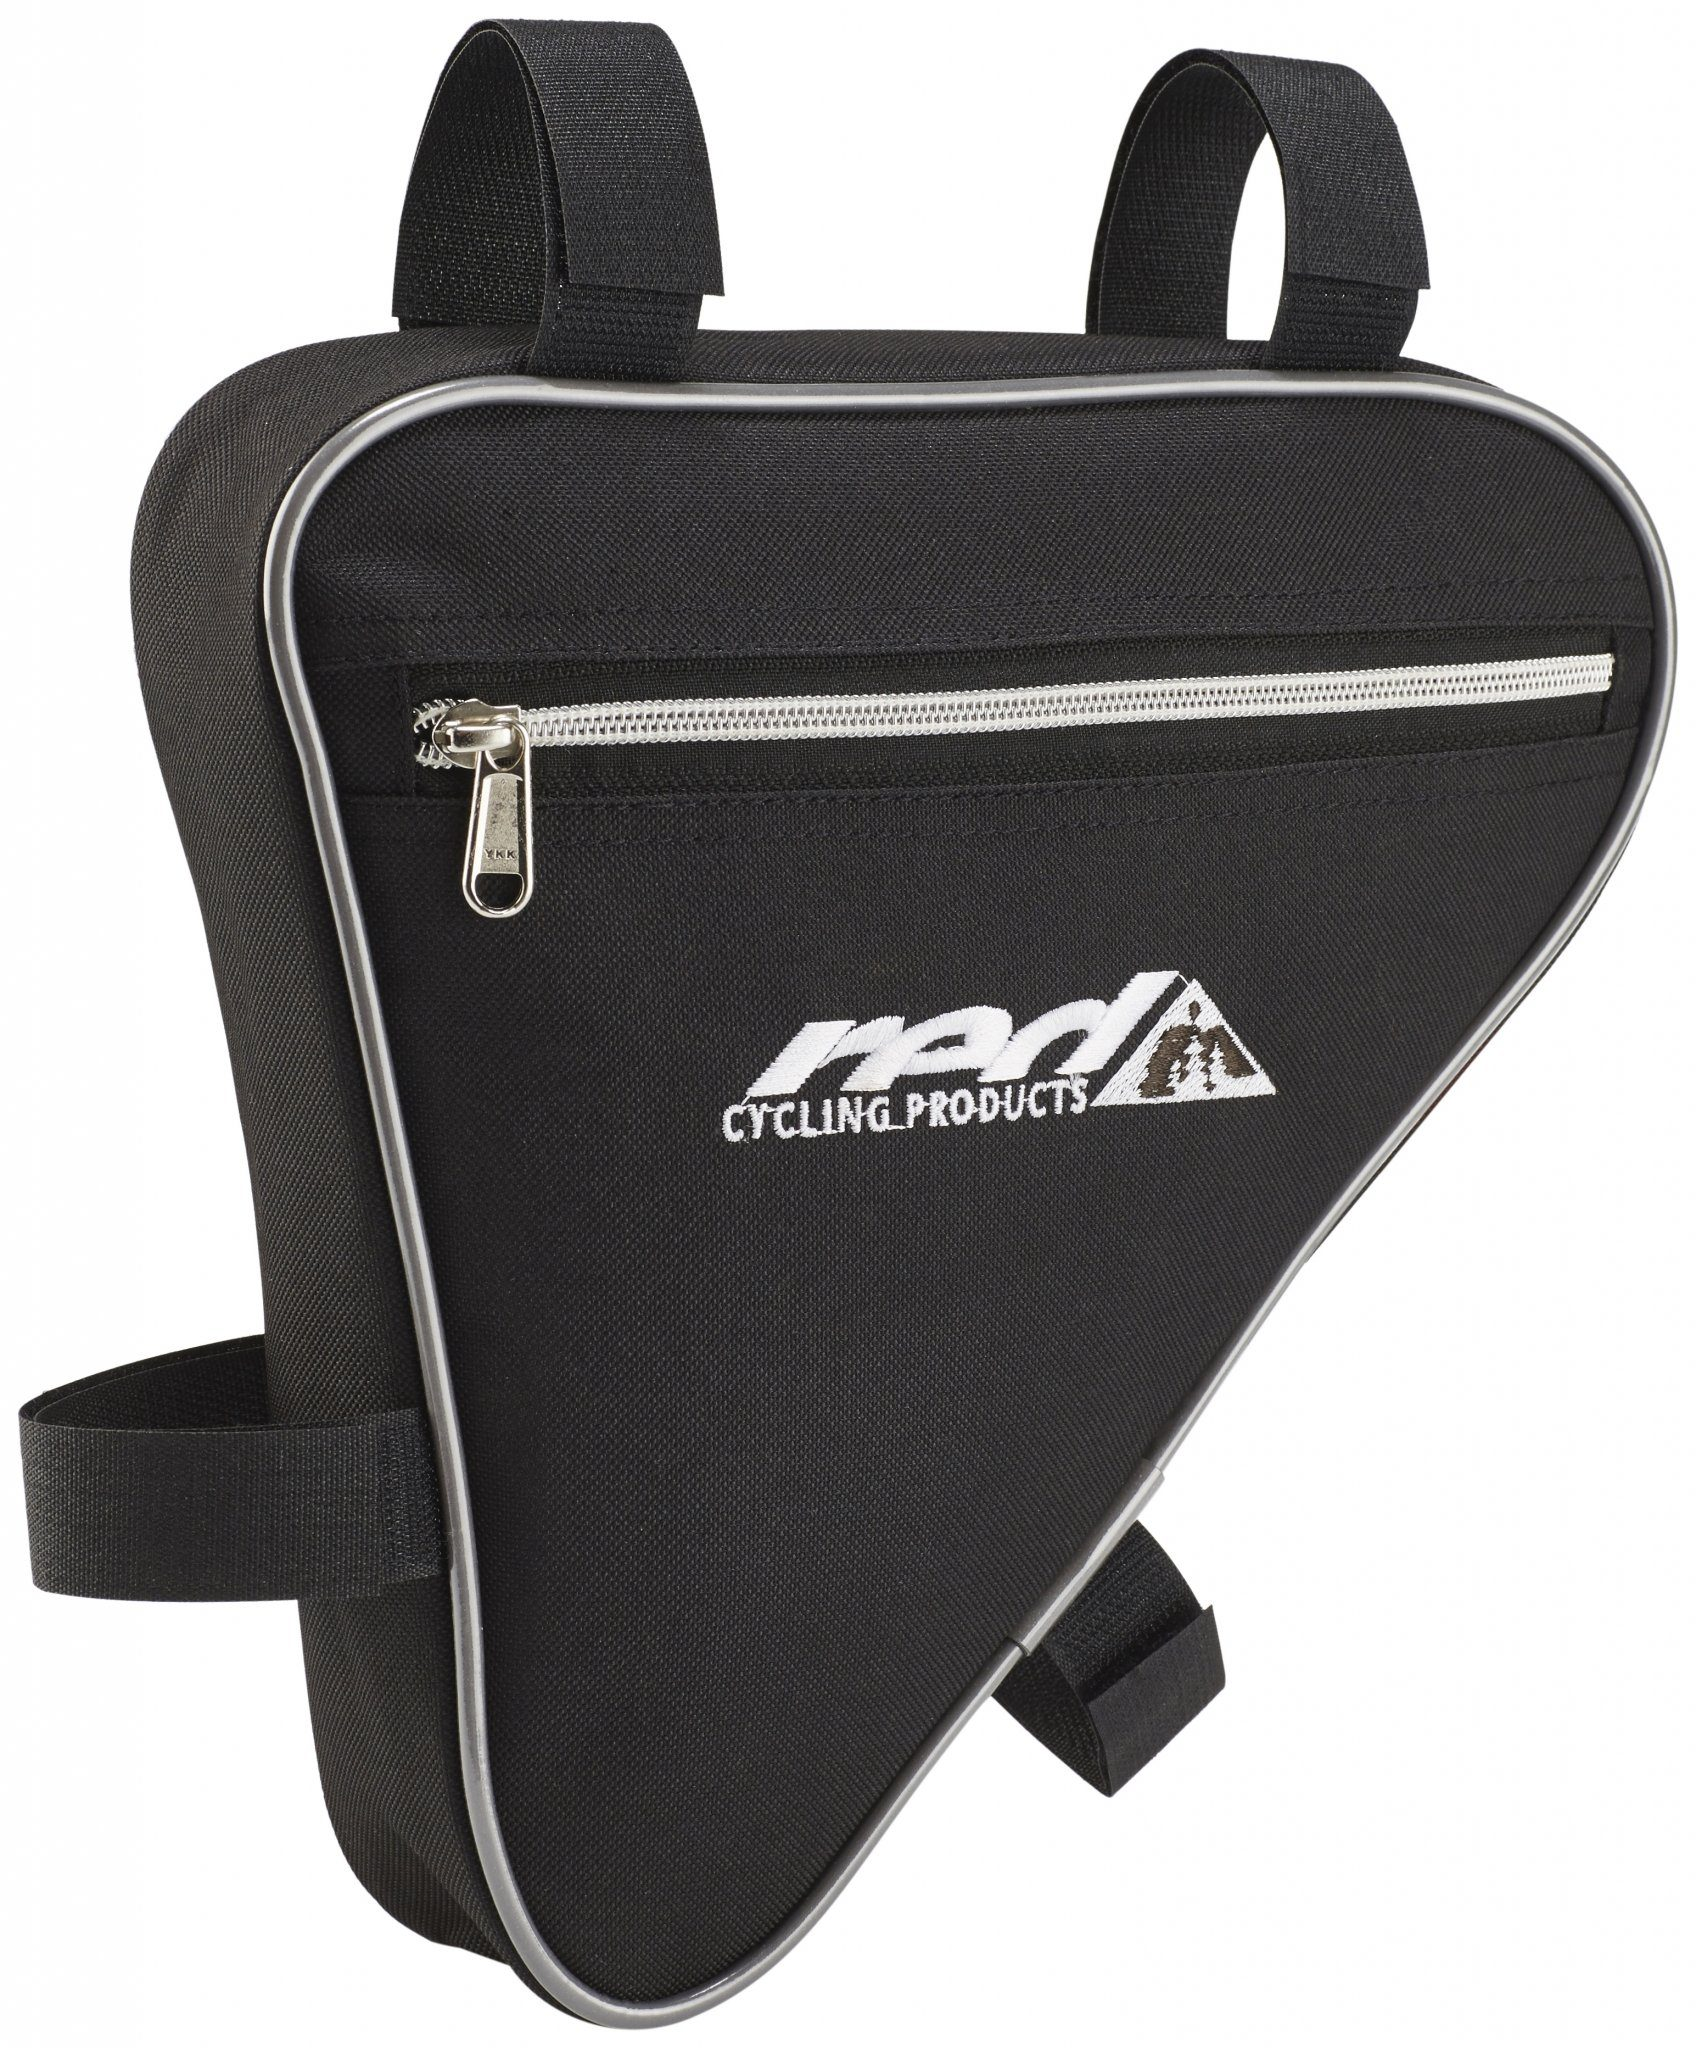 Red Cycling Products Fahrradtasche »Triangle Bag«